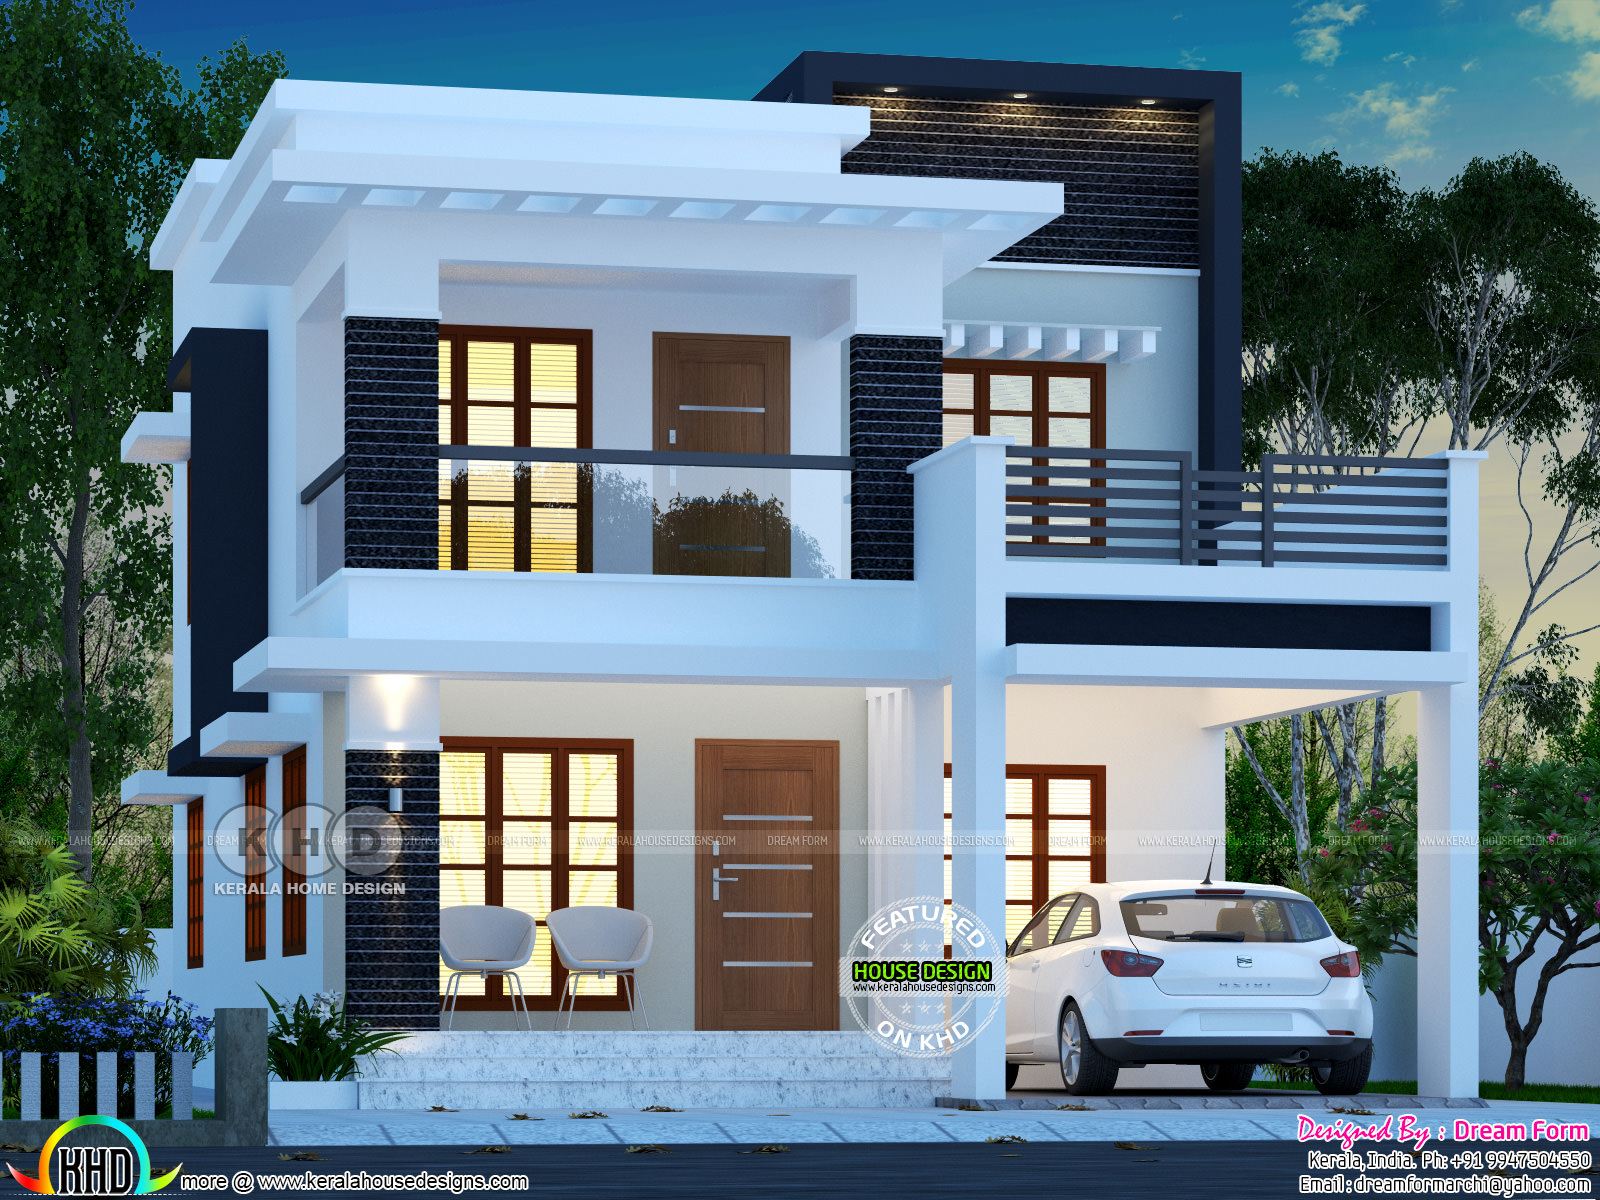 25 lakhs cost estimated double storied home kerala home for House plans with estimated cost to build in kerala